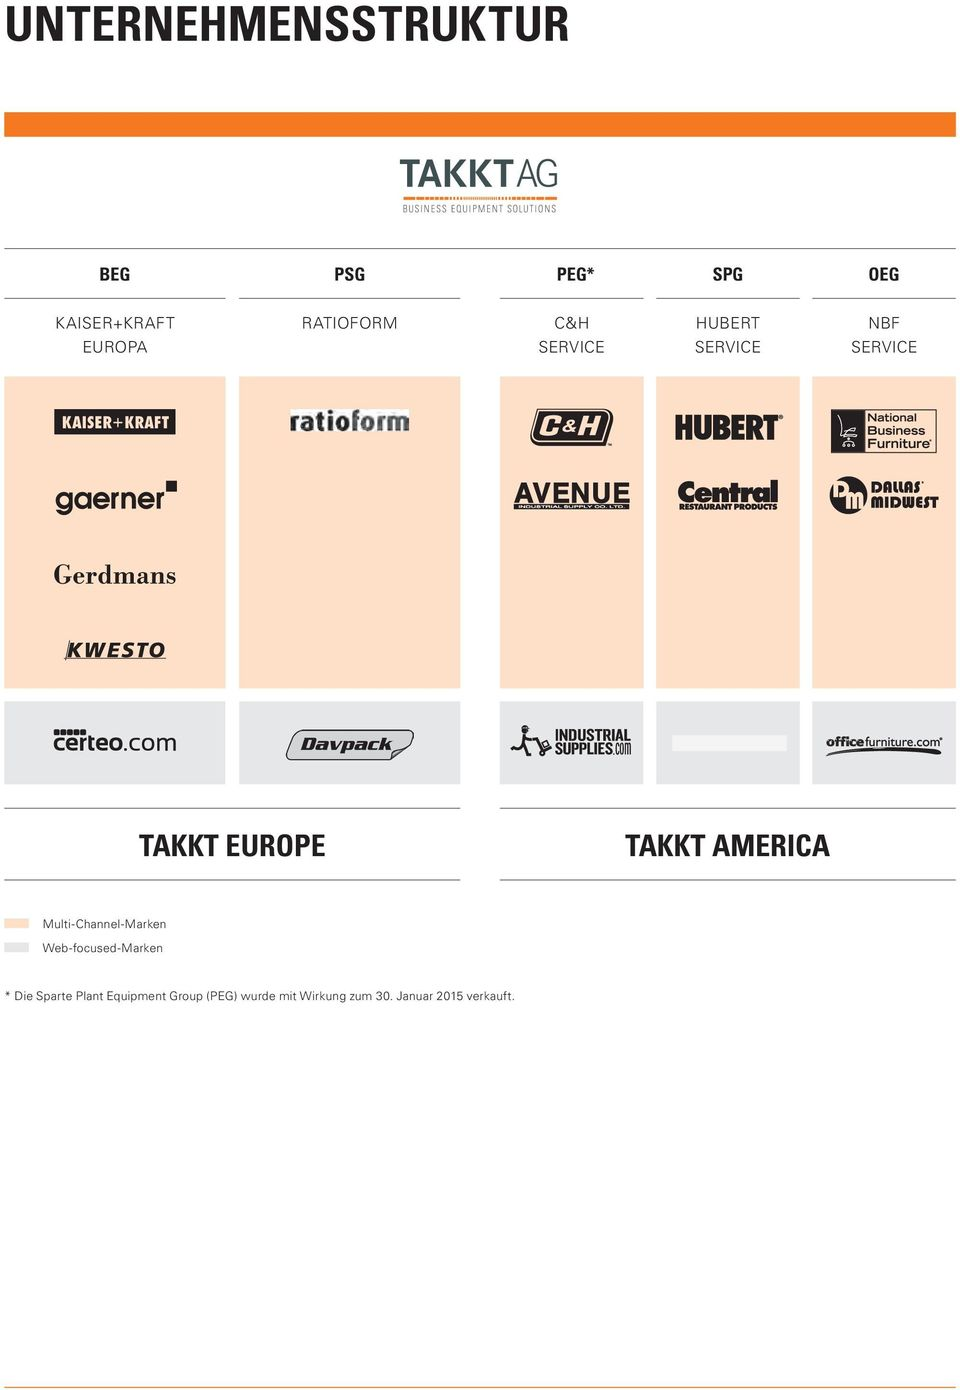 TAKKT AMERICA Multi-Channel-Marken Web-focused-Marken * Die Sparte